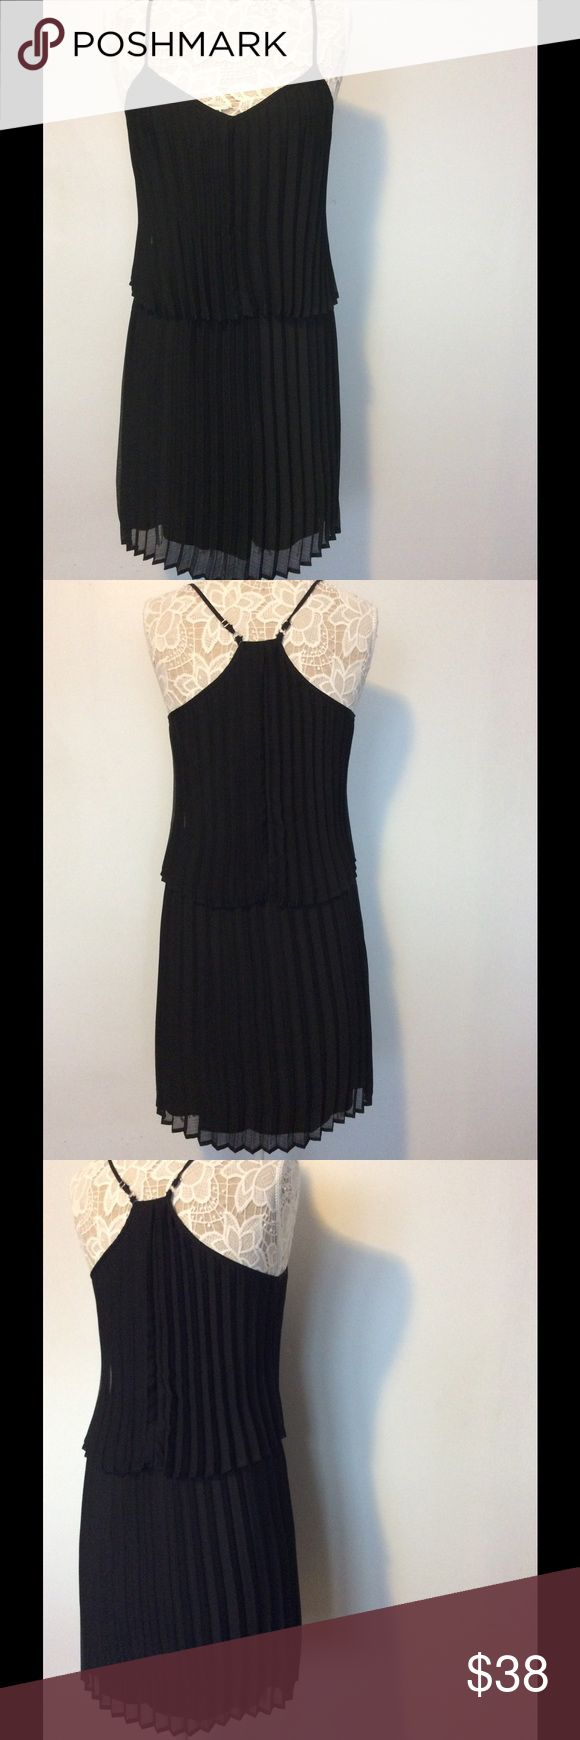 Fun black pleated evening dress by bar lll Shoulder strap and pleated, falls to your knee, very pretty, never worn, you will love the black dress. Bar III Dresses